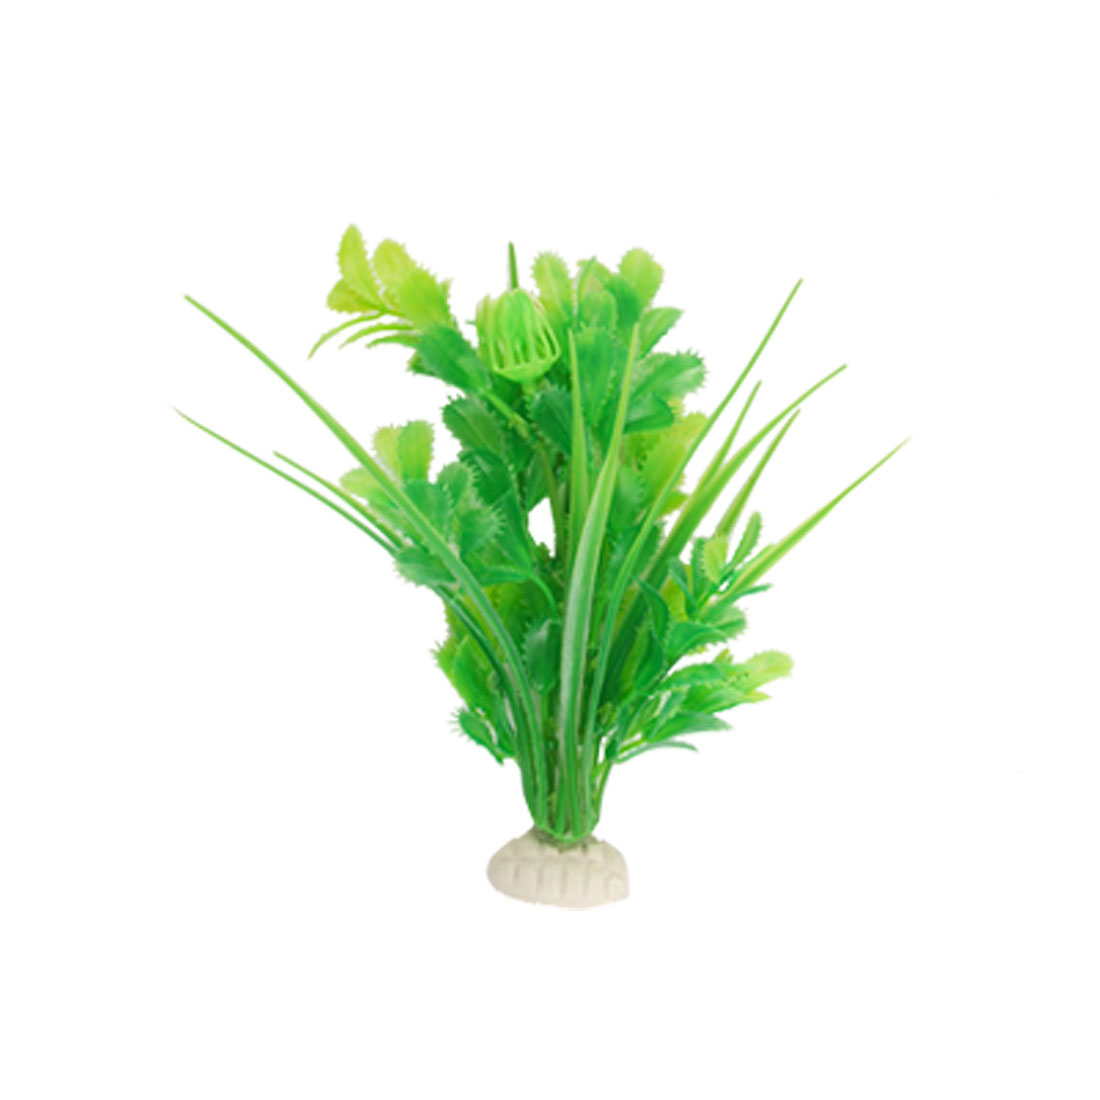 Fish Tank Green Leaf White Flower Plastic Plant Aquascaping